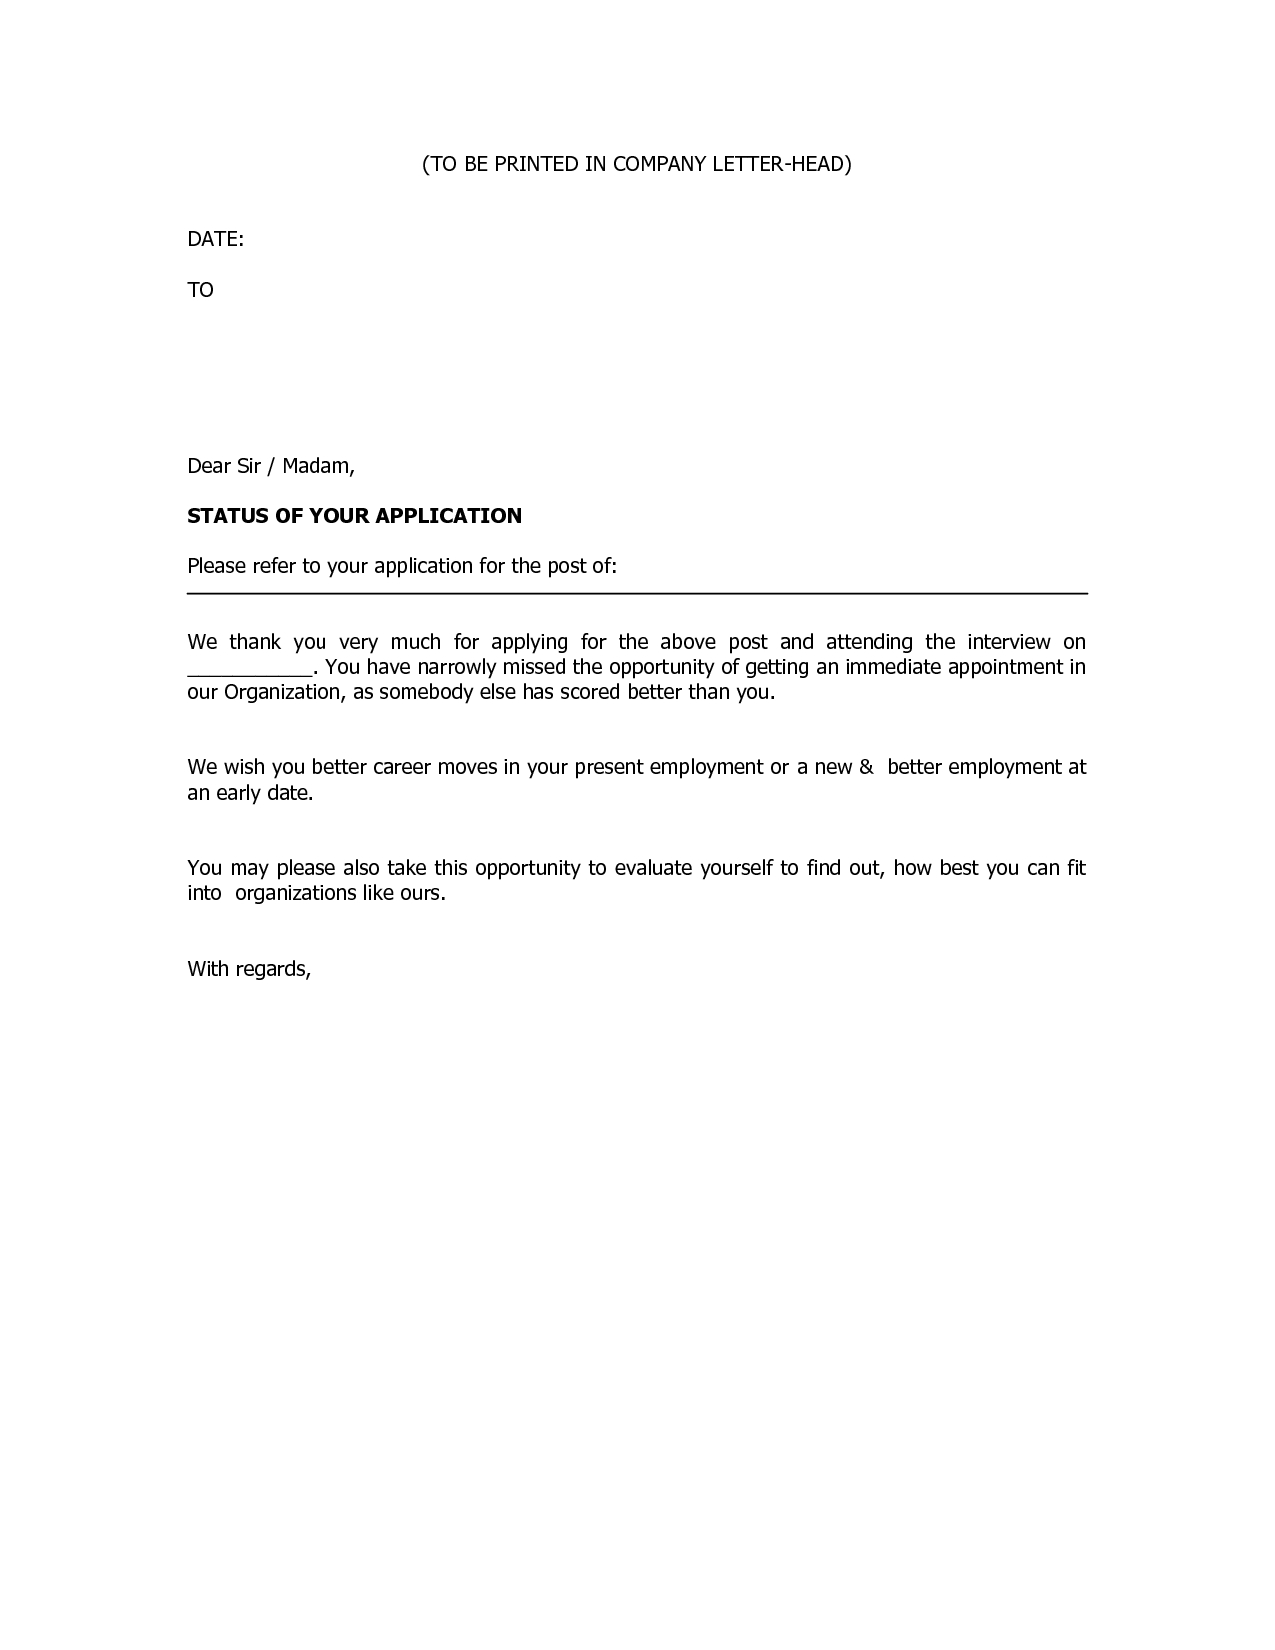 rejection letter template after interview Collection-Business Rejection Letter Rejection Letters are usually addressed to applicants who are not qualified for the job we offered How To Write Rejection 16-e